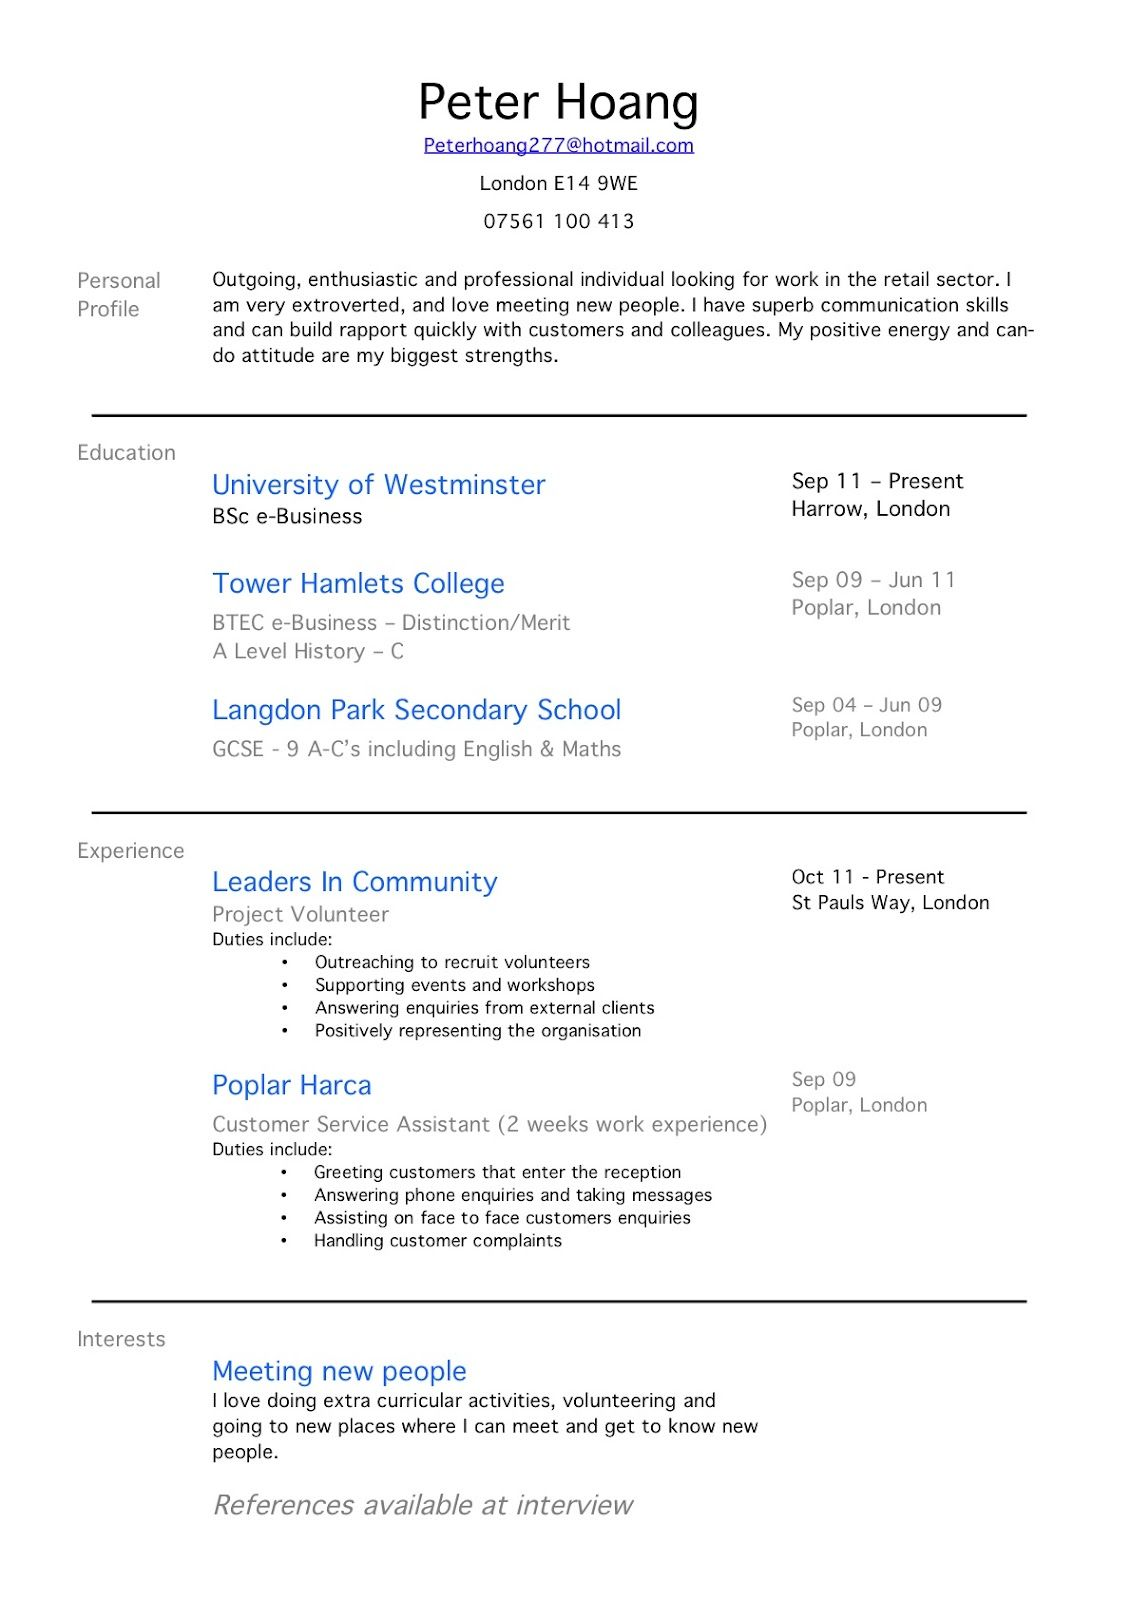 Resume Sample Crew Member With Work Experience Examples First Job College  Student Summer  Resume Examples For Jobs With Experience